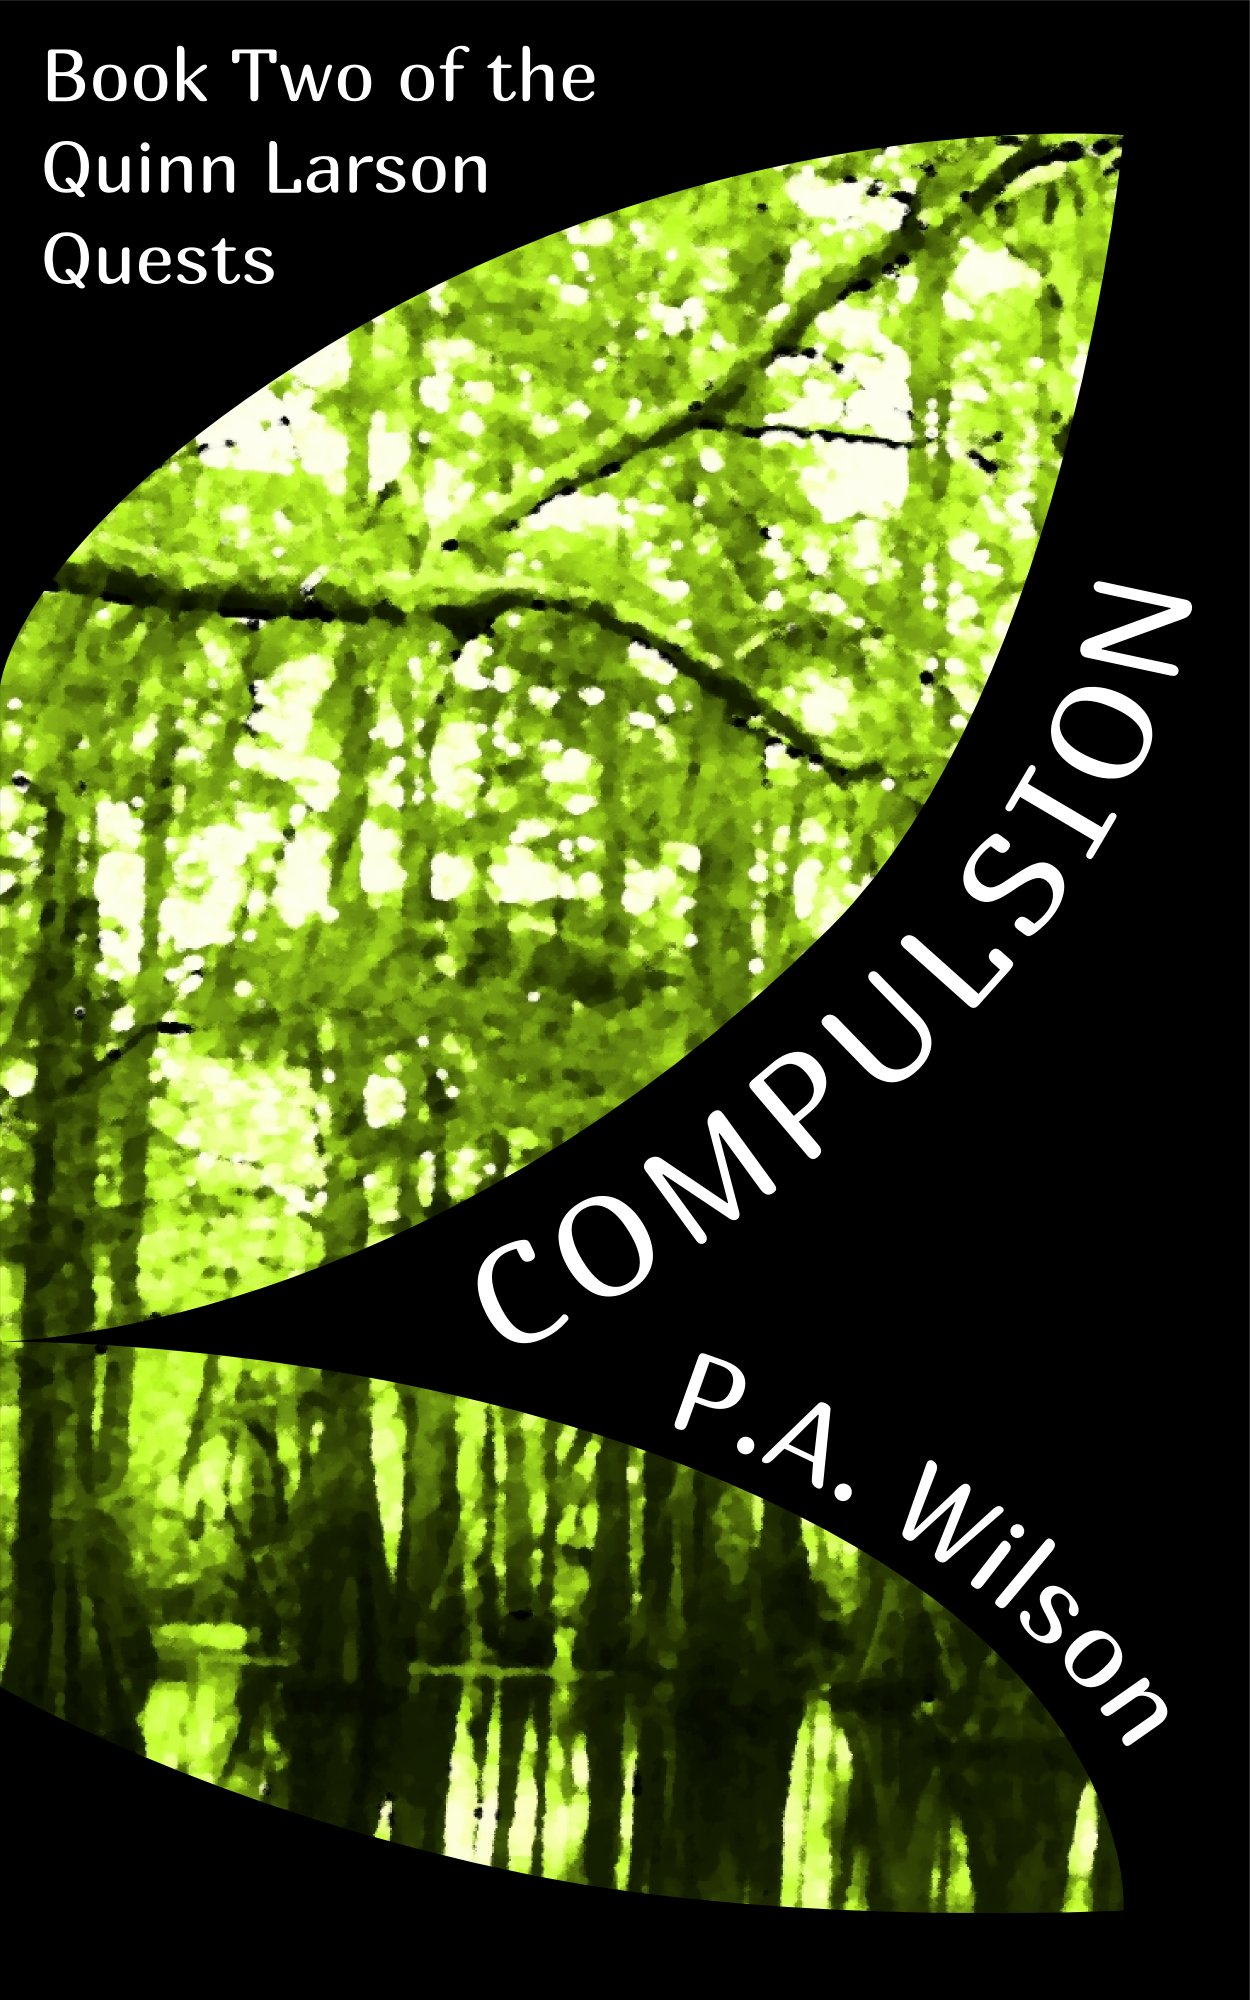 Compulsion, book 2 of the Quinn Larson Quests